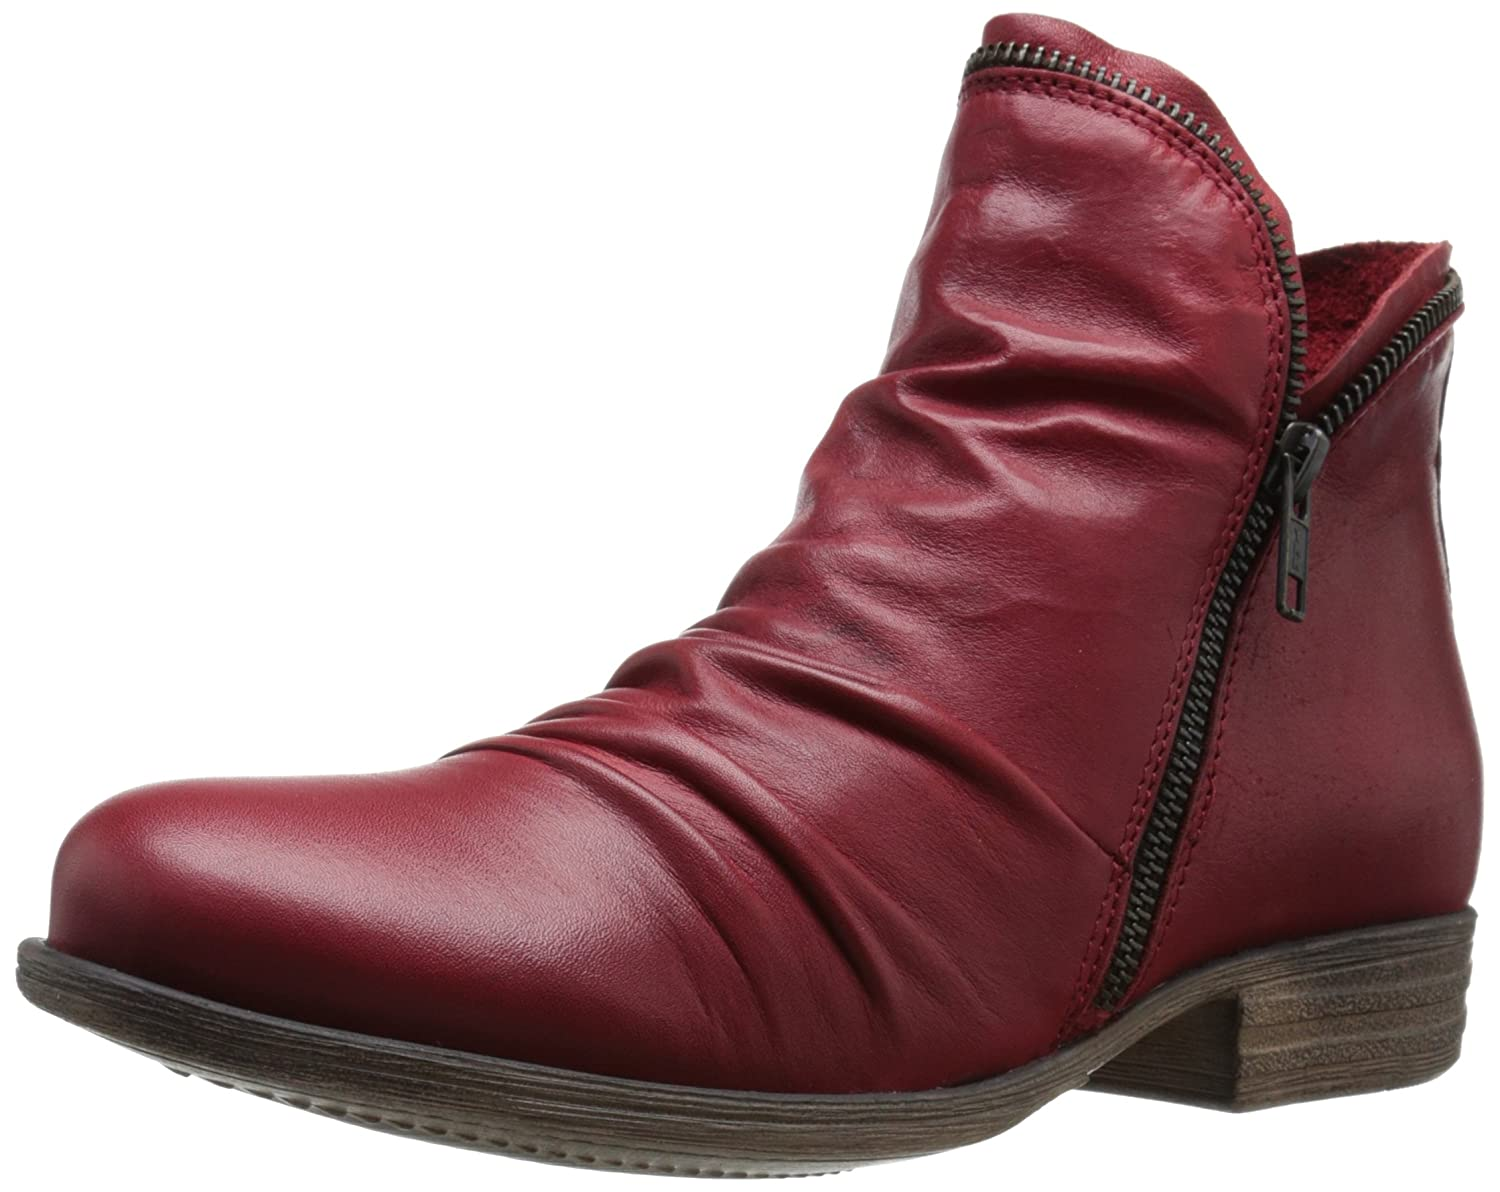 Red Miz Mooz Women's Luna Leather Ankle Boot with Zipper Accent